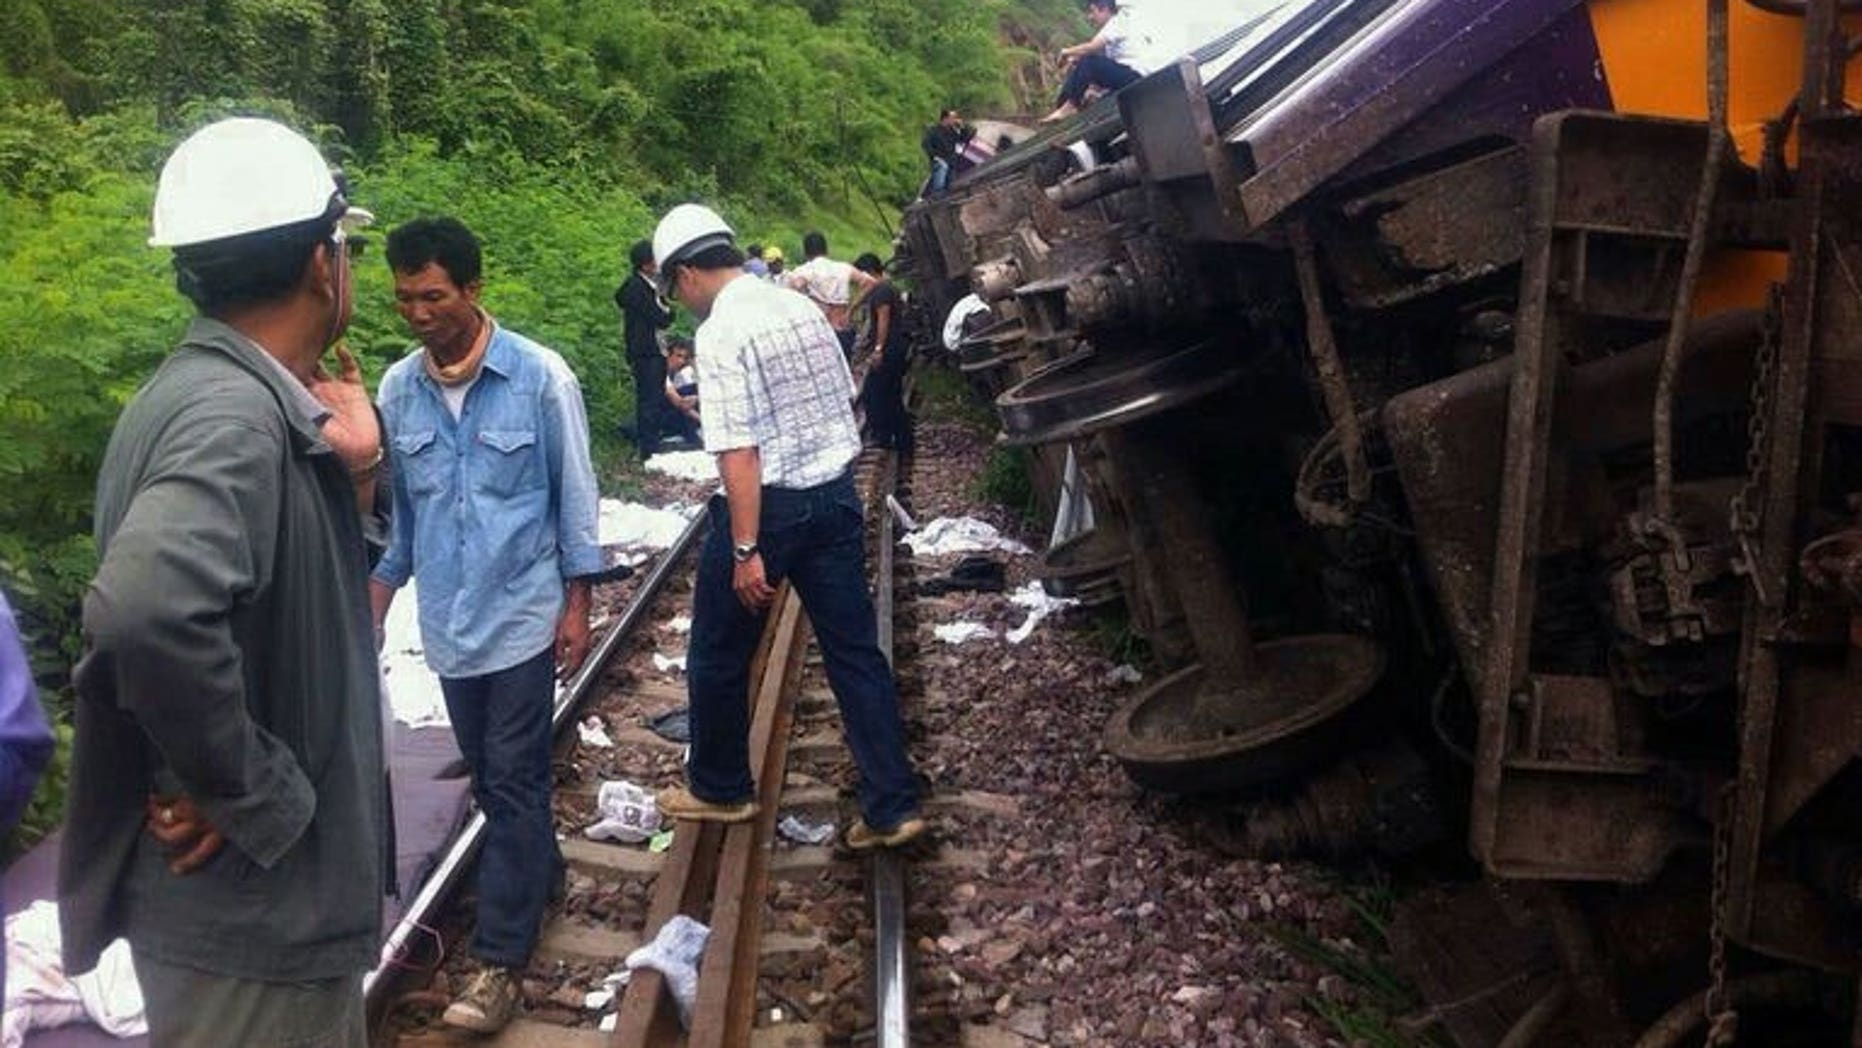 Rescue workers at the site of a Bangkok-Chiang Mai express service train that derailed from its tracks in Phrae province, northern Thailand on July 17, 2013. Foreign tourists were among 23 people injured when the overnight sleeper train derailed early Wednesday, the national rail operator said.